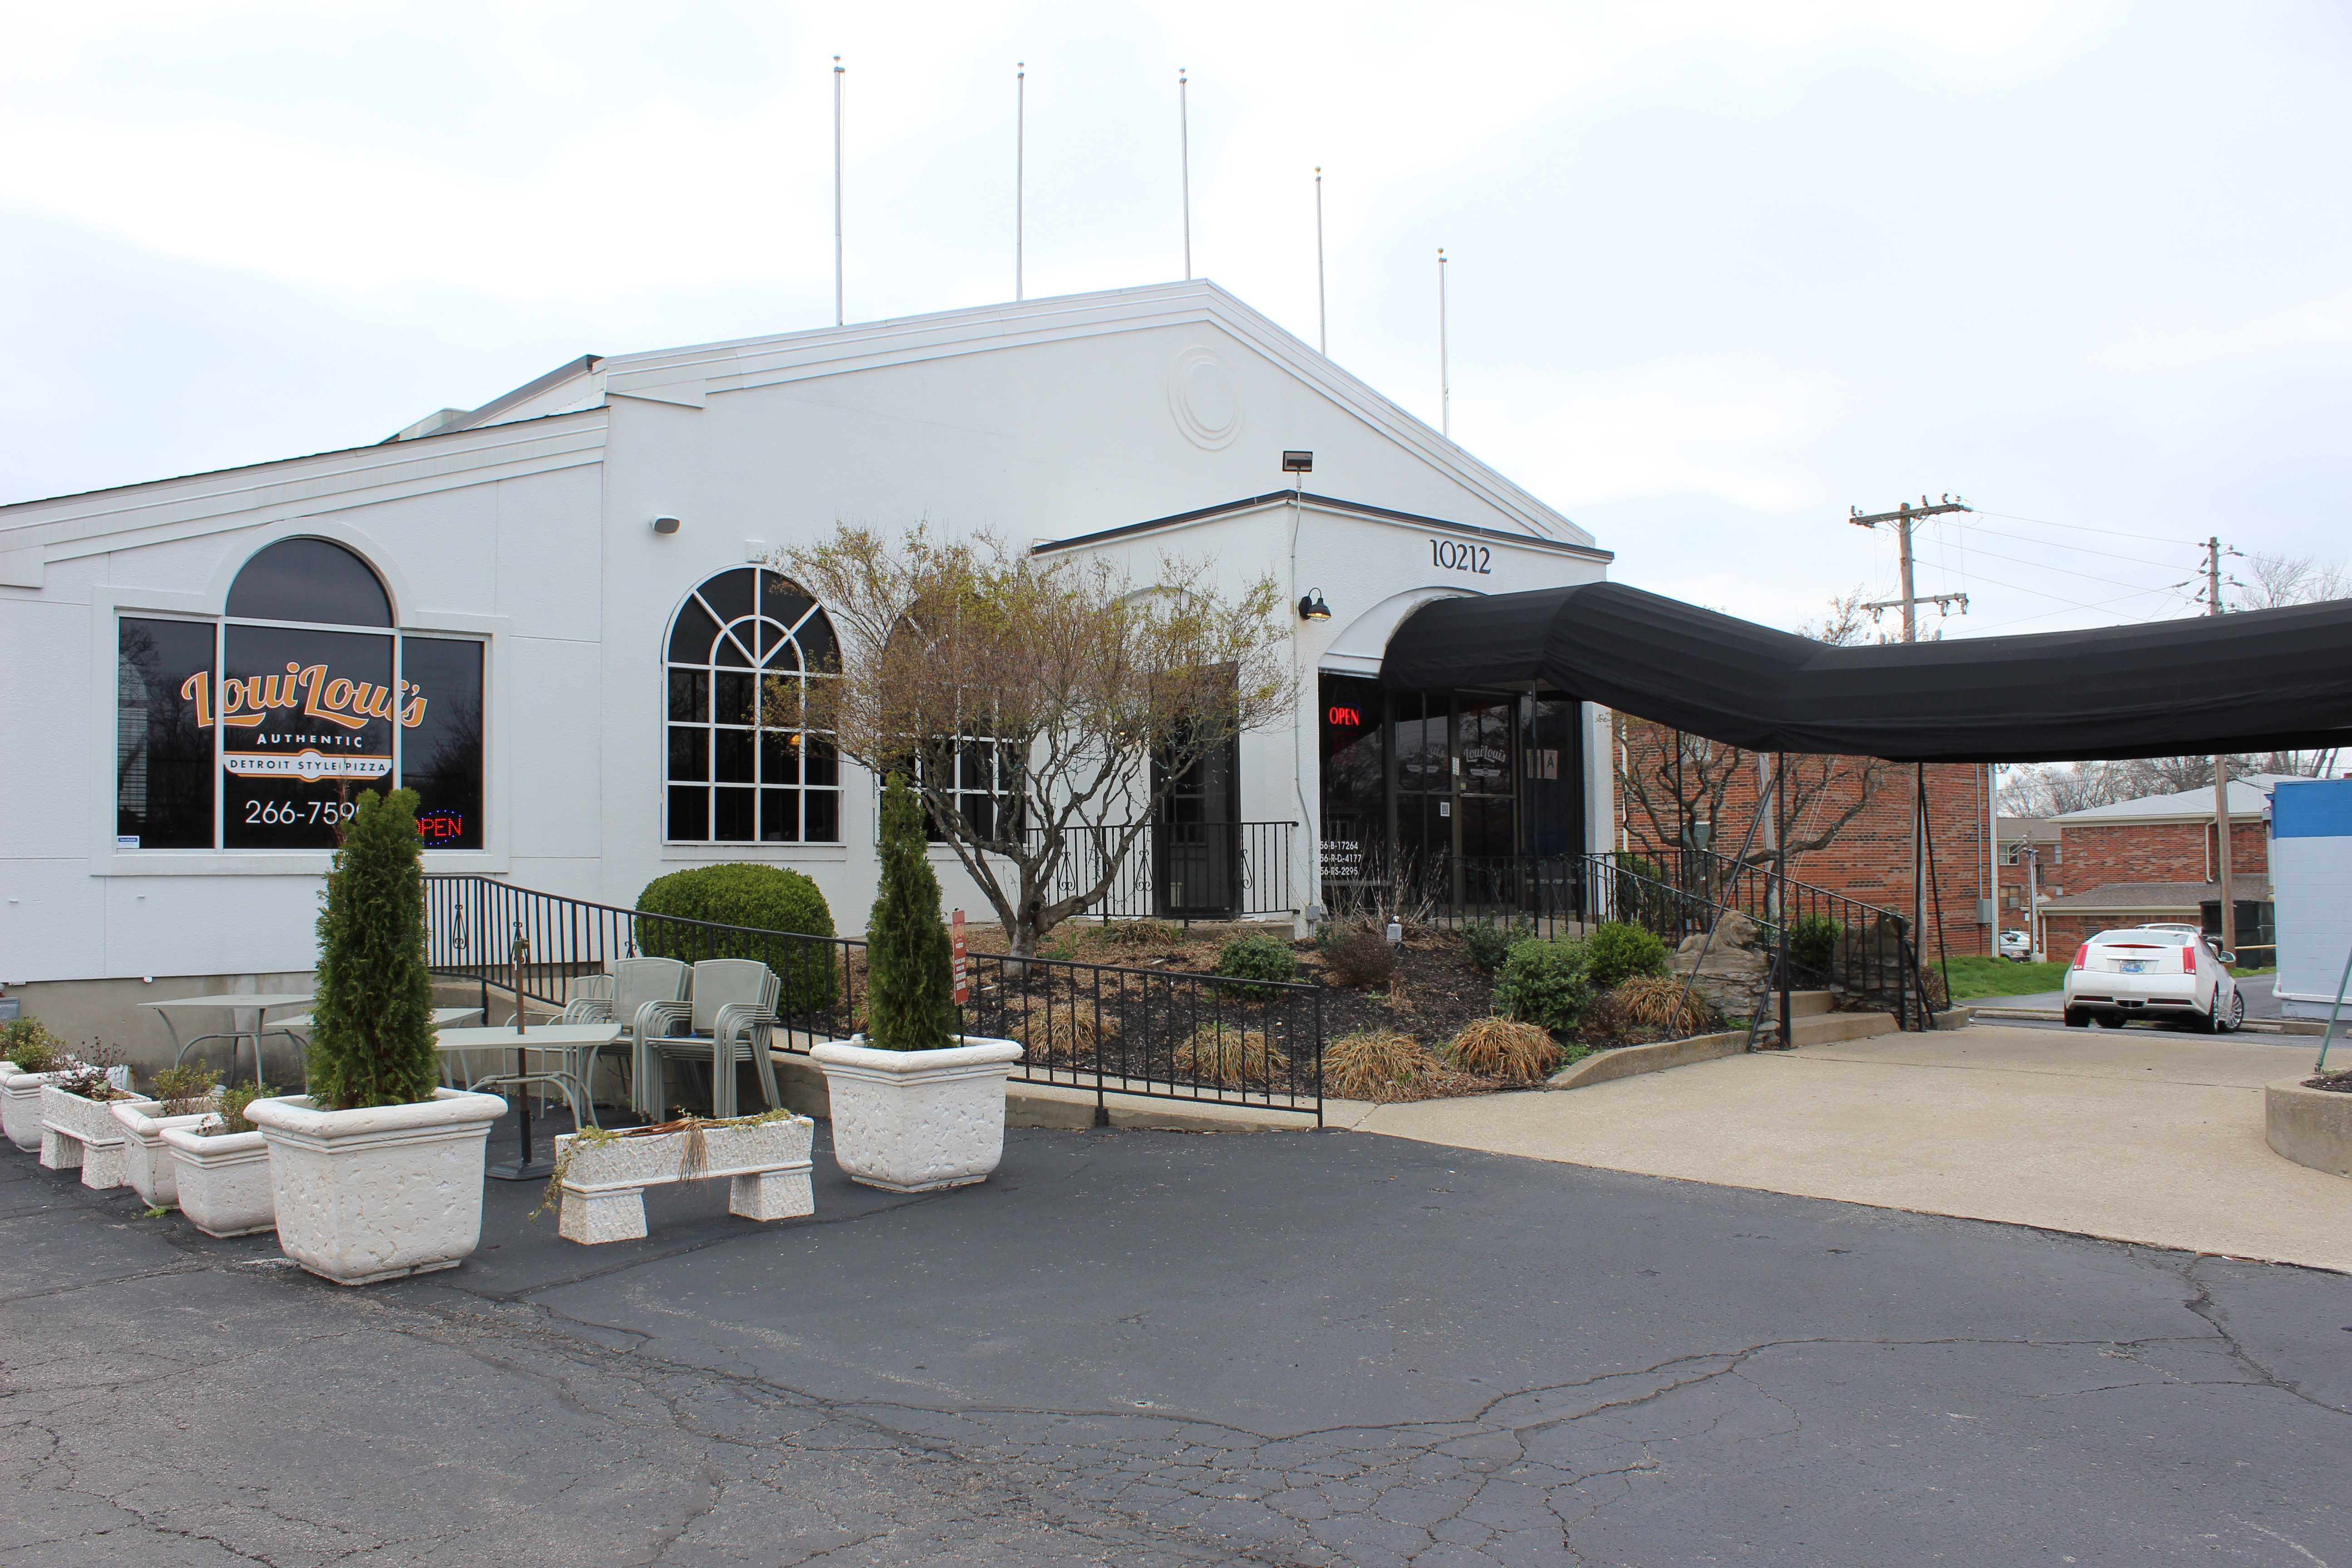 The exterior of Loui Loui's on Taylorsville Road. Photo by Olivia Evans.